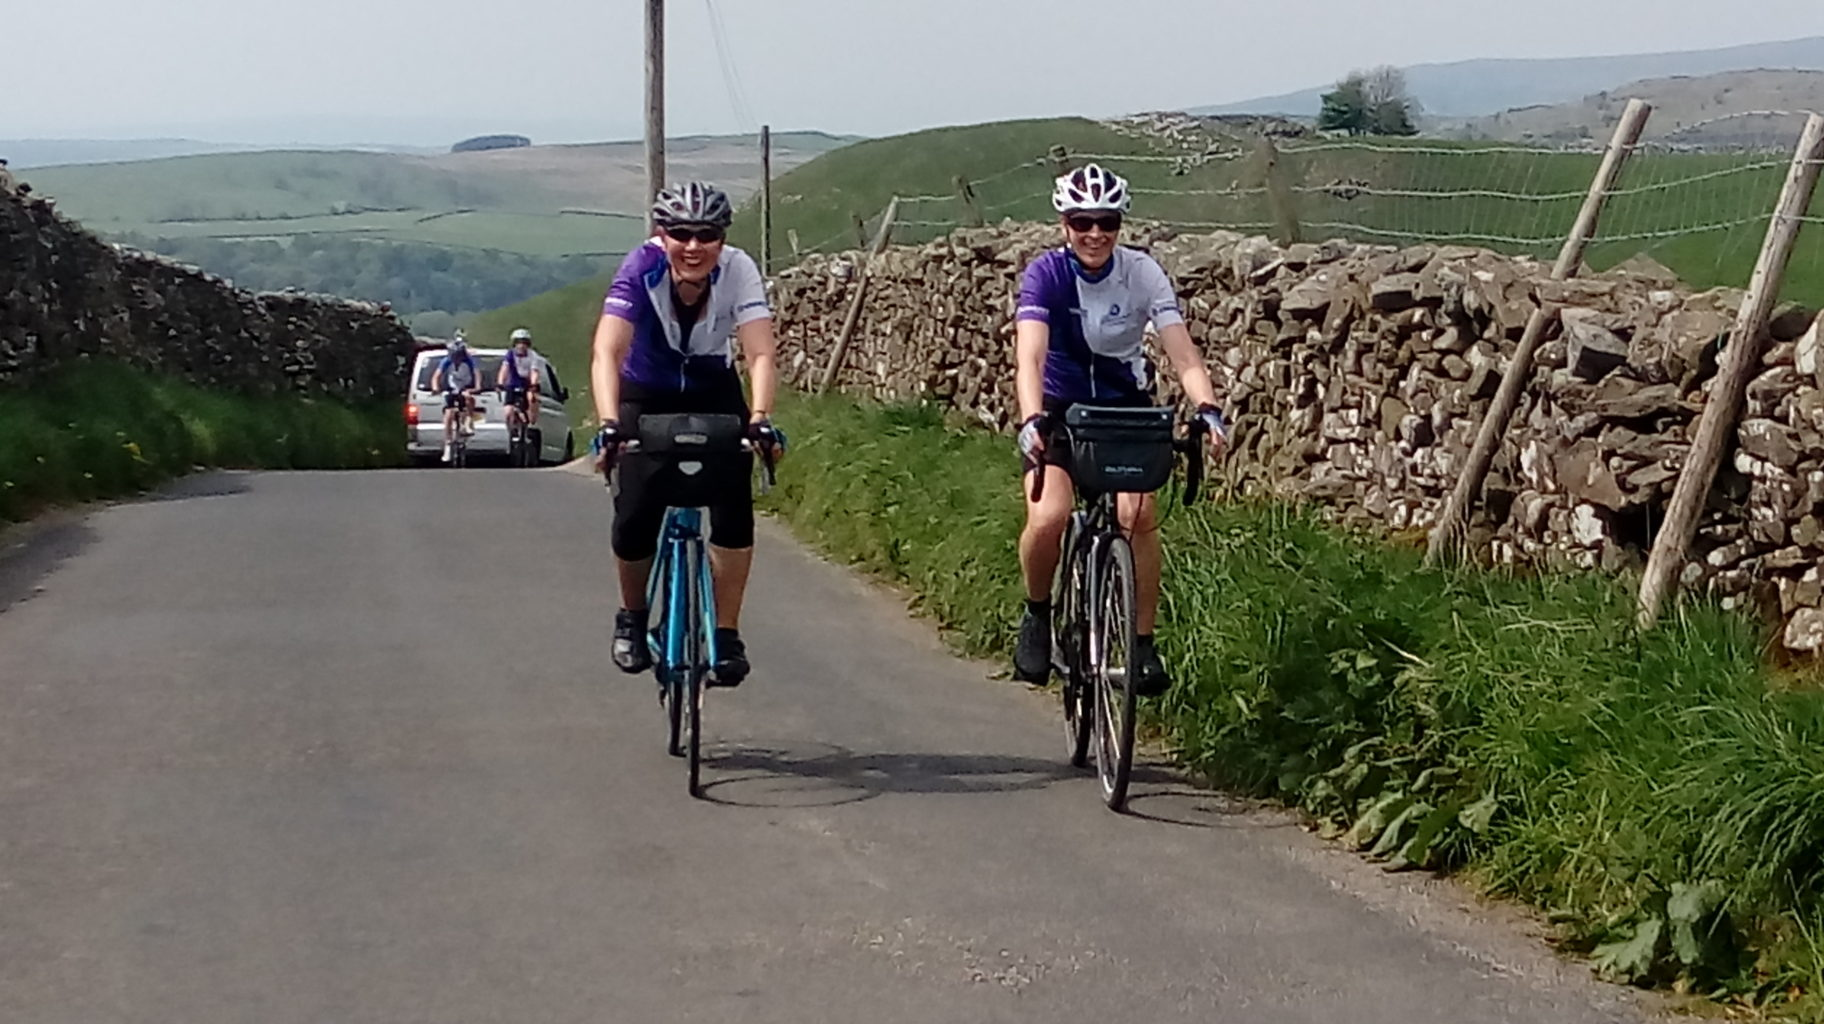 Join our weekend rides from Sheffield all year round